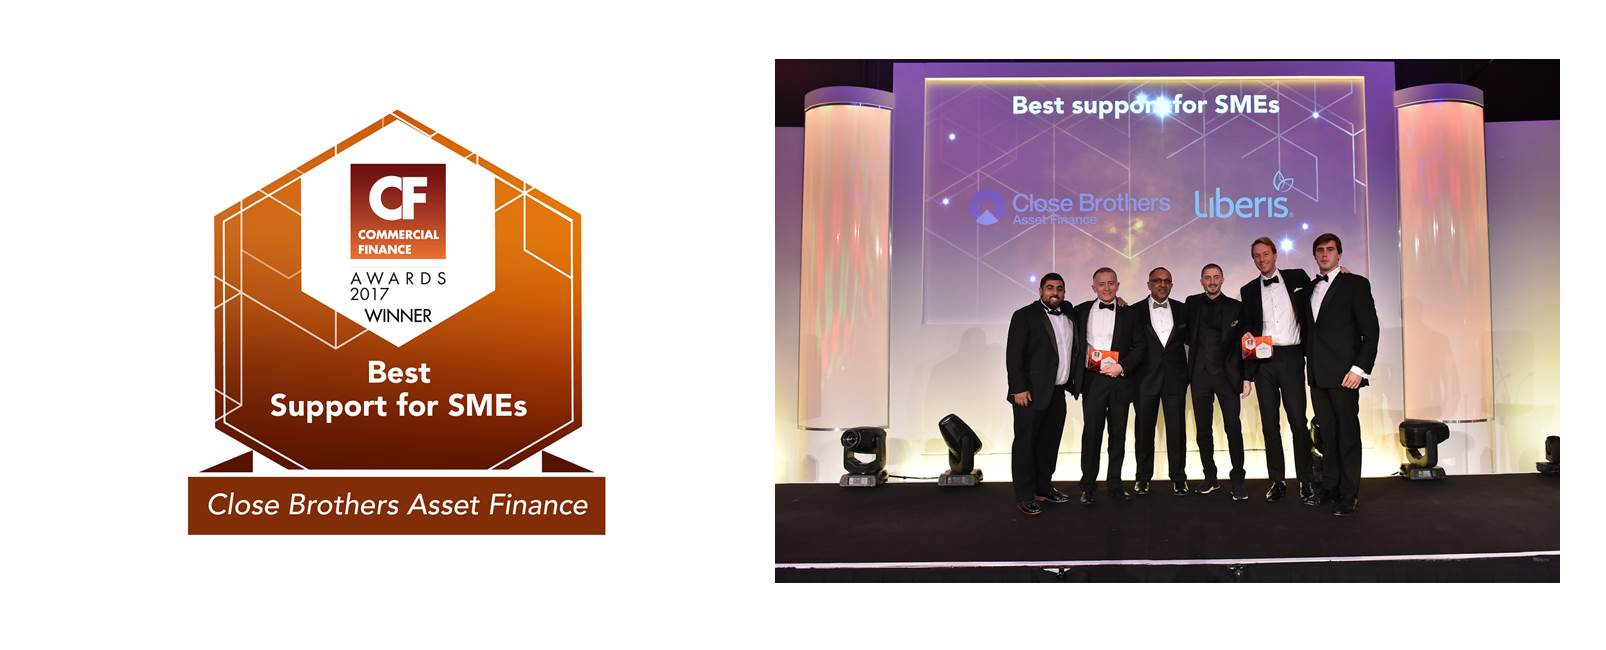 Best Support for SMEs